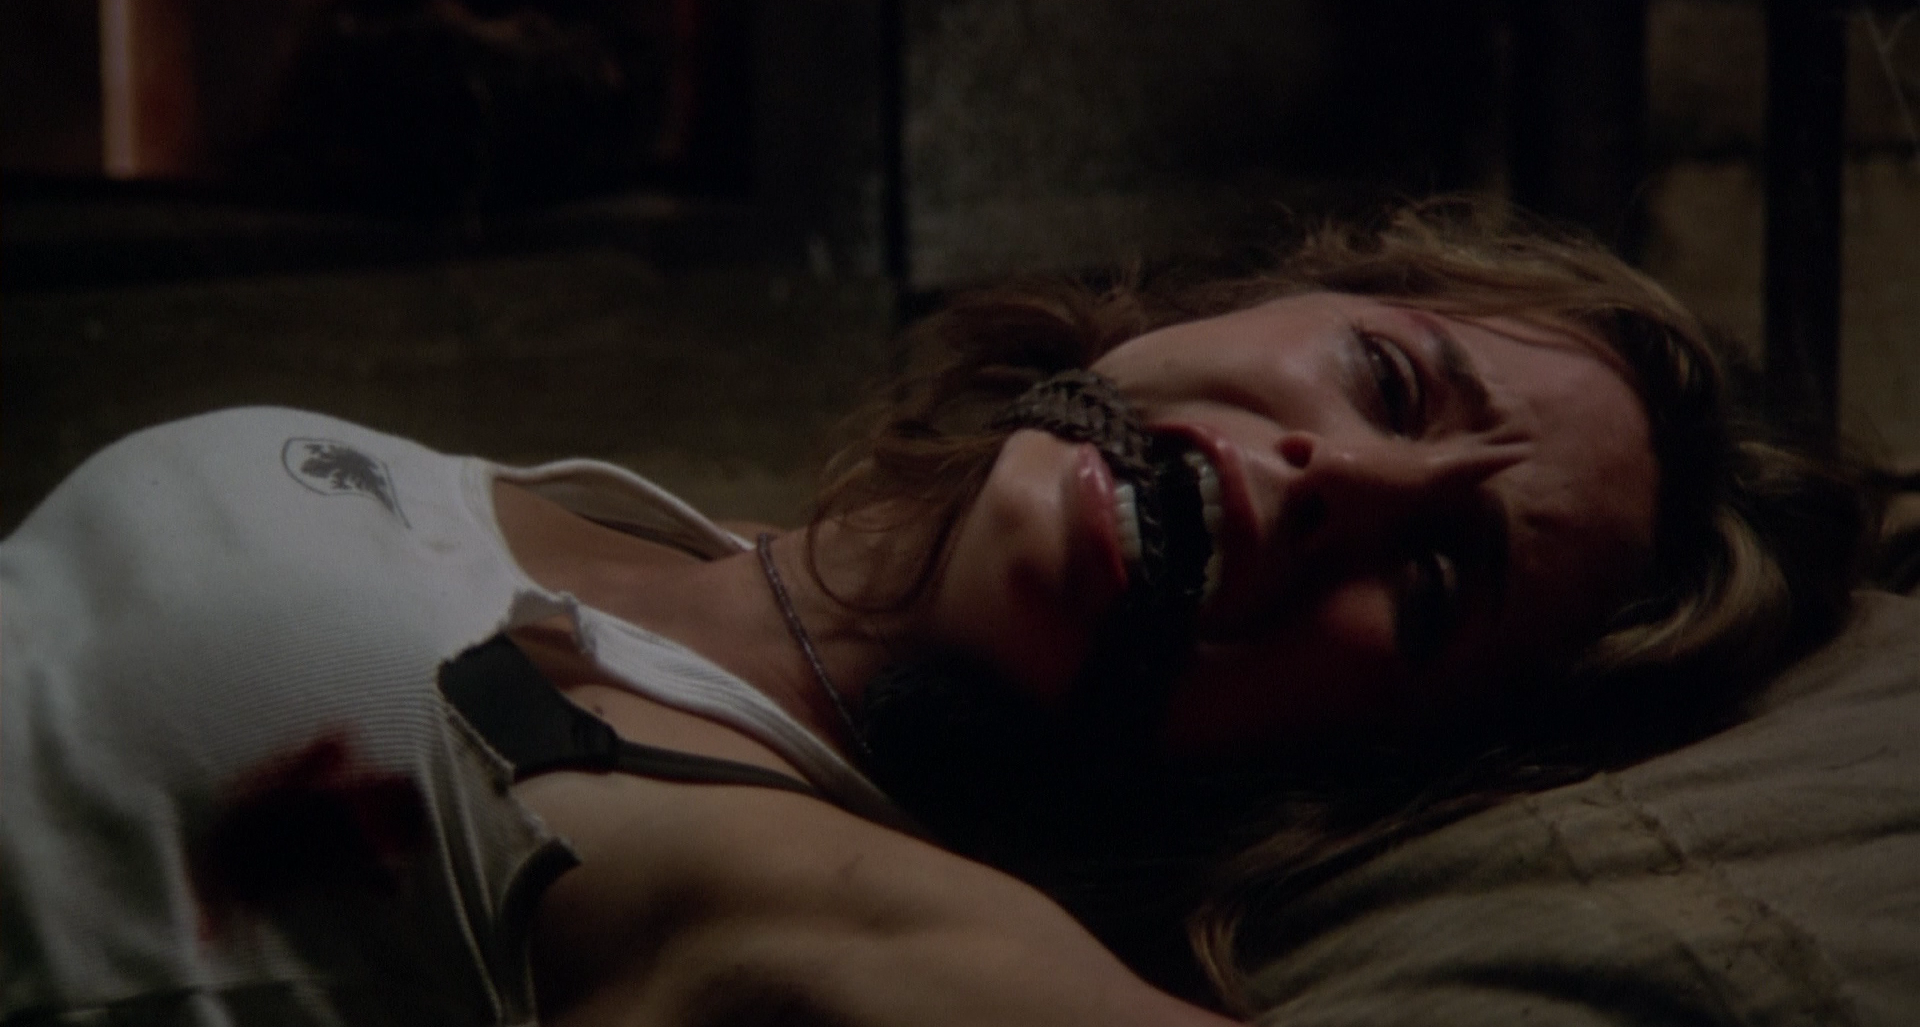 Jessie tied up in the hillbillies' house in Wrong Turn.